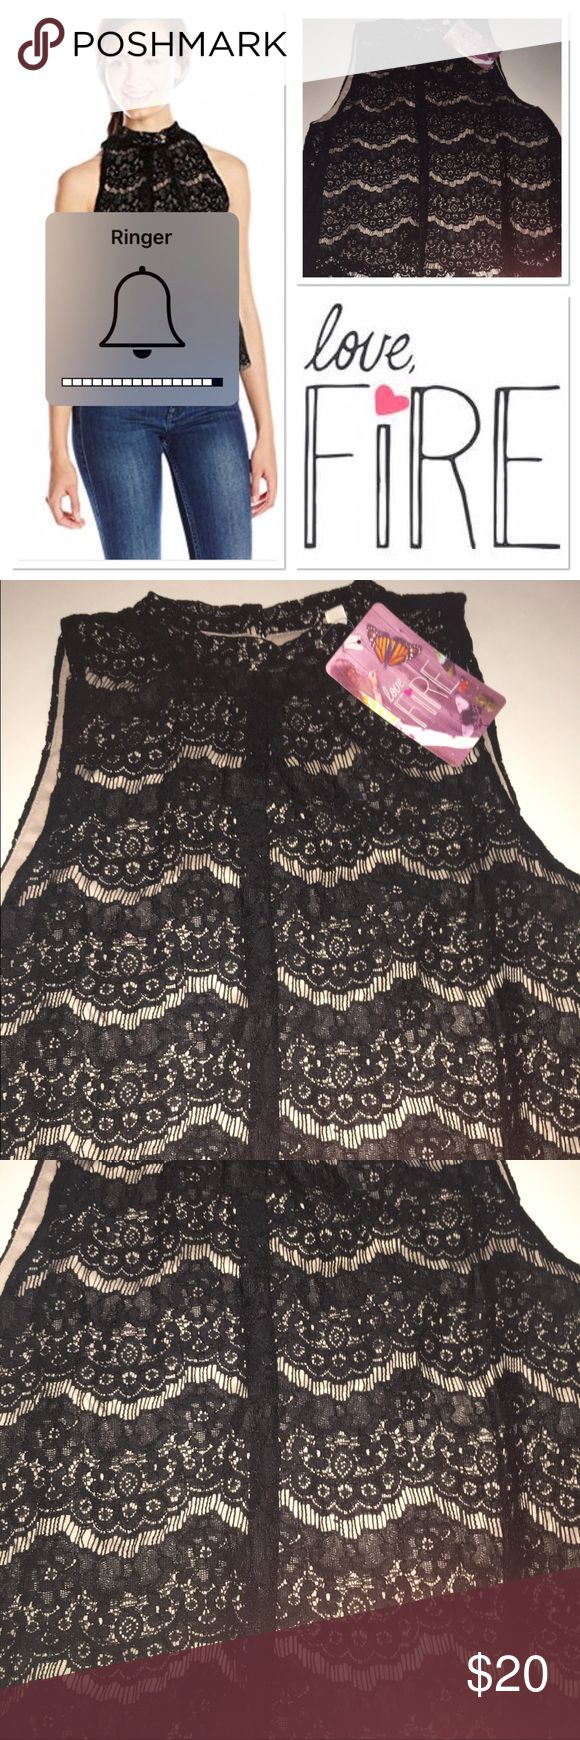 NWT Love Fire lace top with scalloped bottom Size L brand new black and cream lace top with scalloped bottom Love Fire Tops Blouses